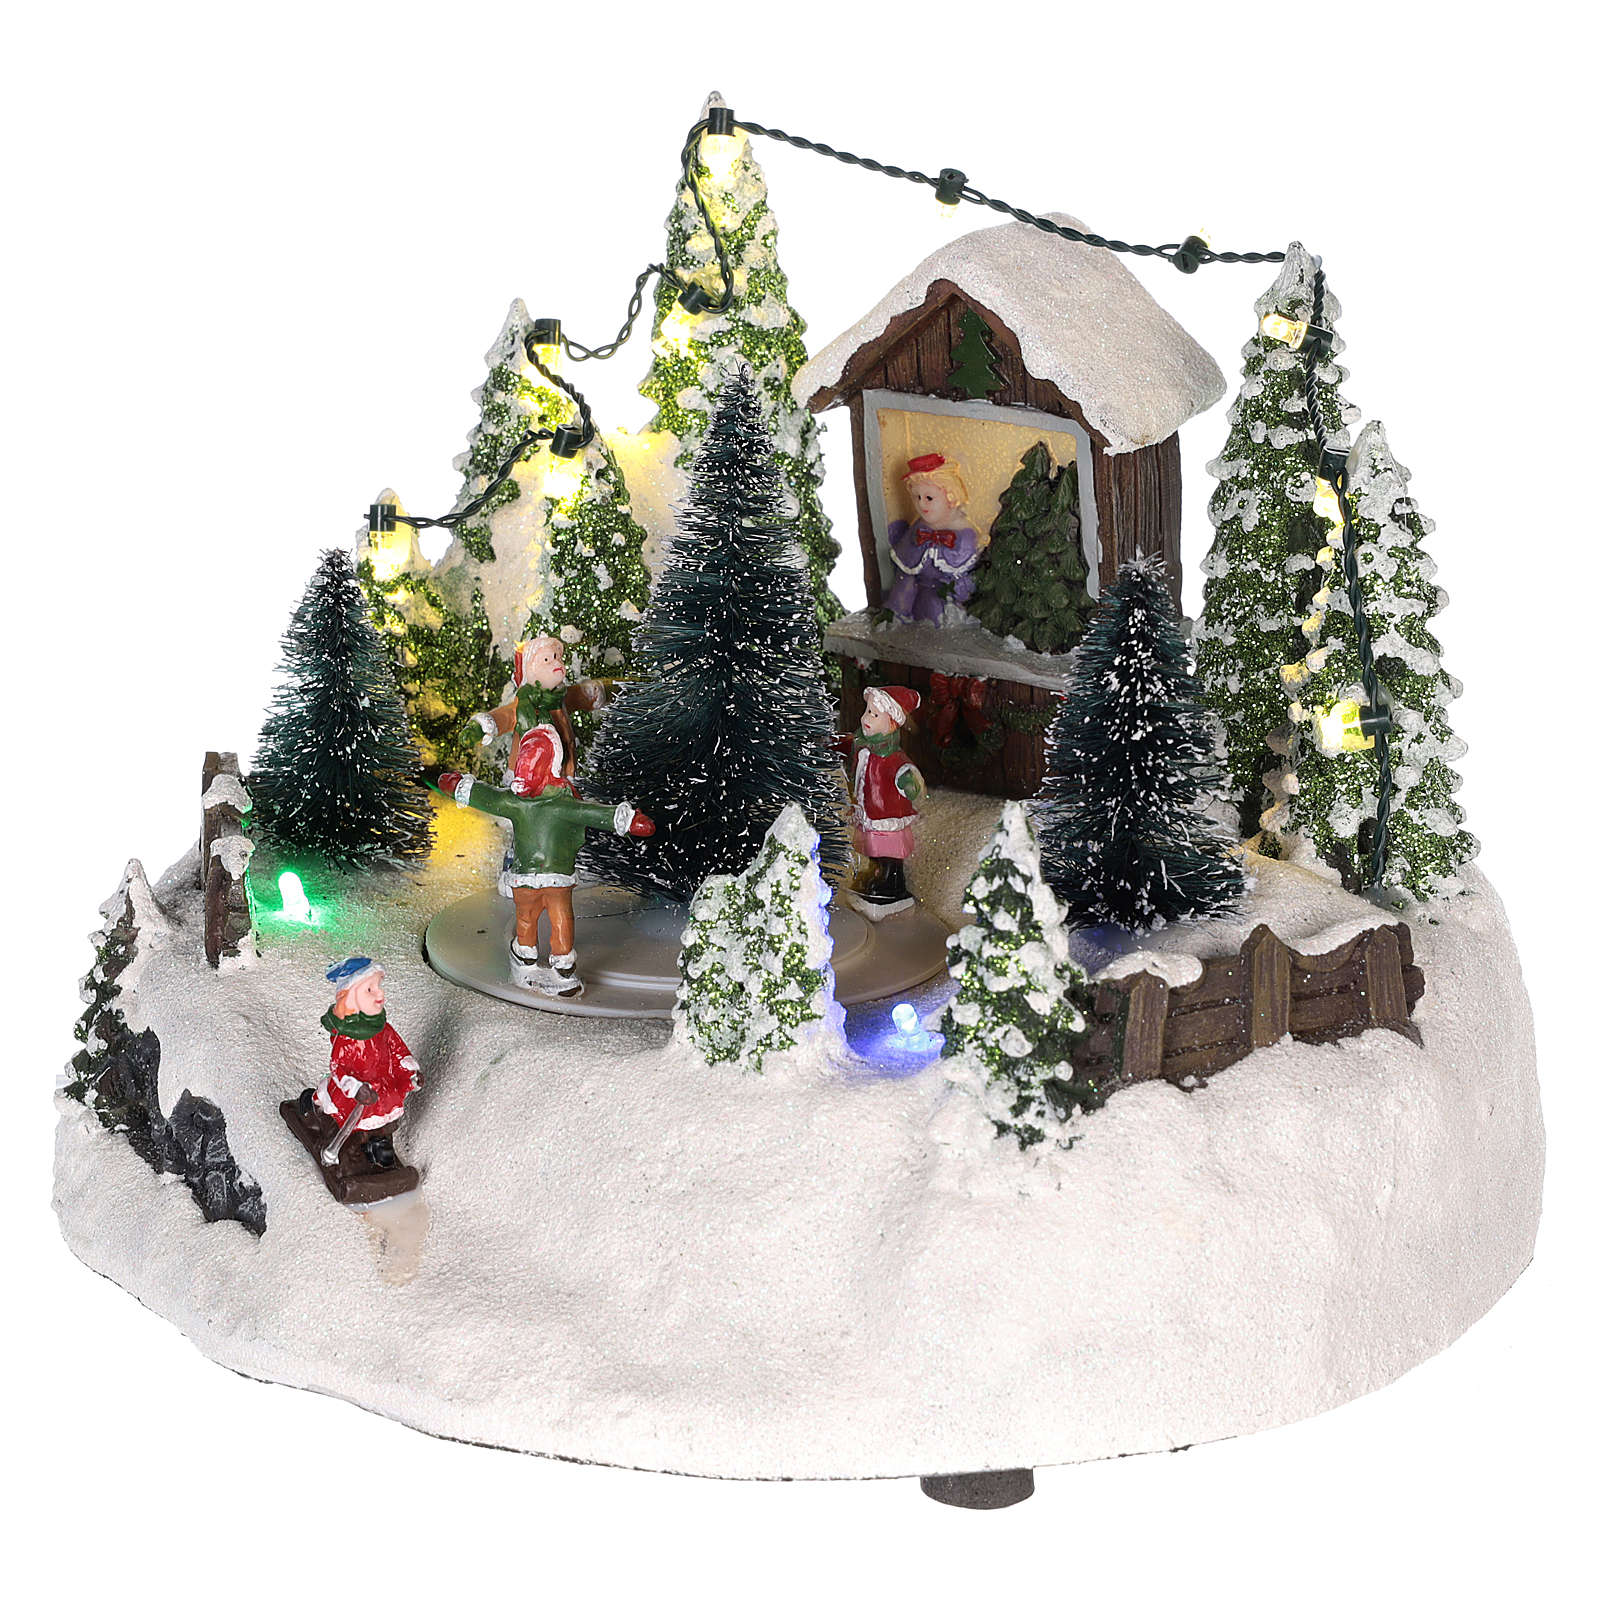 Christmas village with Christmas tree and skating rink 15x20 3